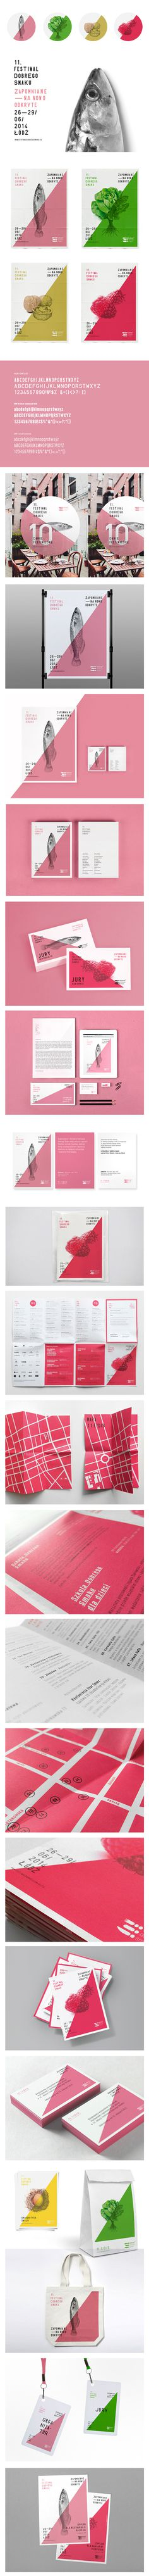 identity of the 11. Festival Dobrego Smaku in Lodz on Branding Served #food #branding